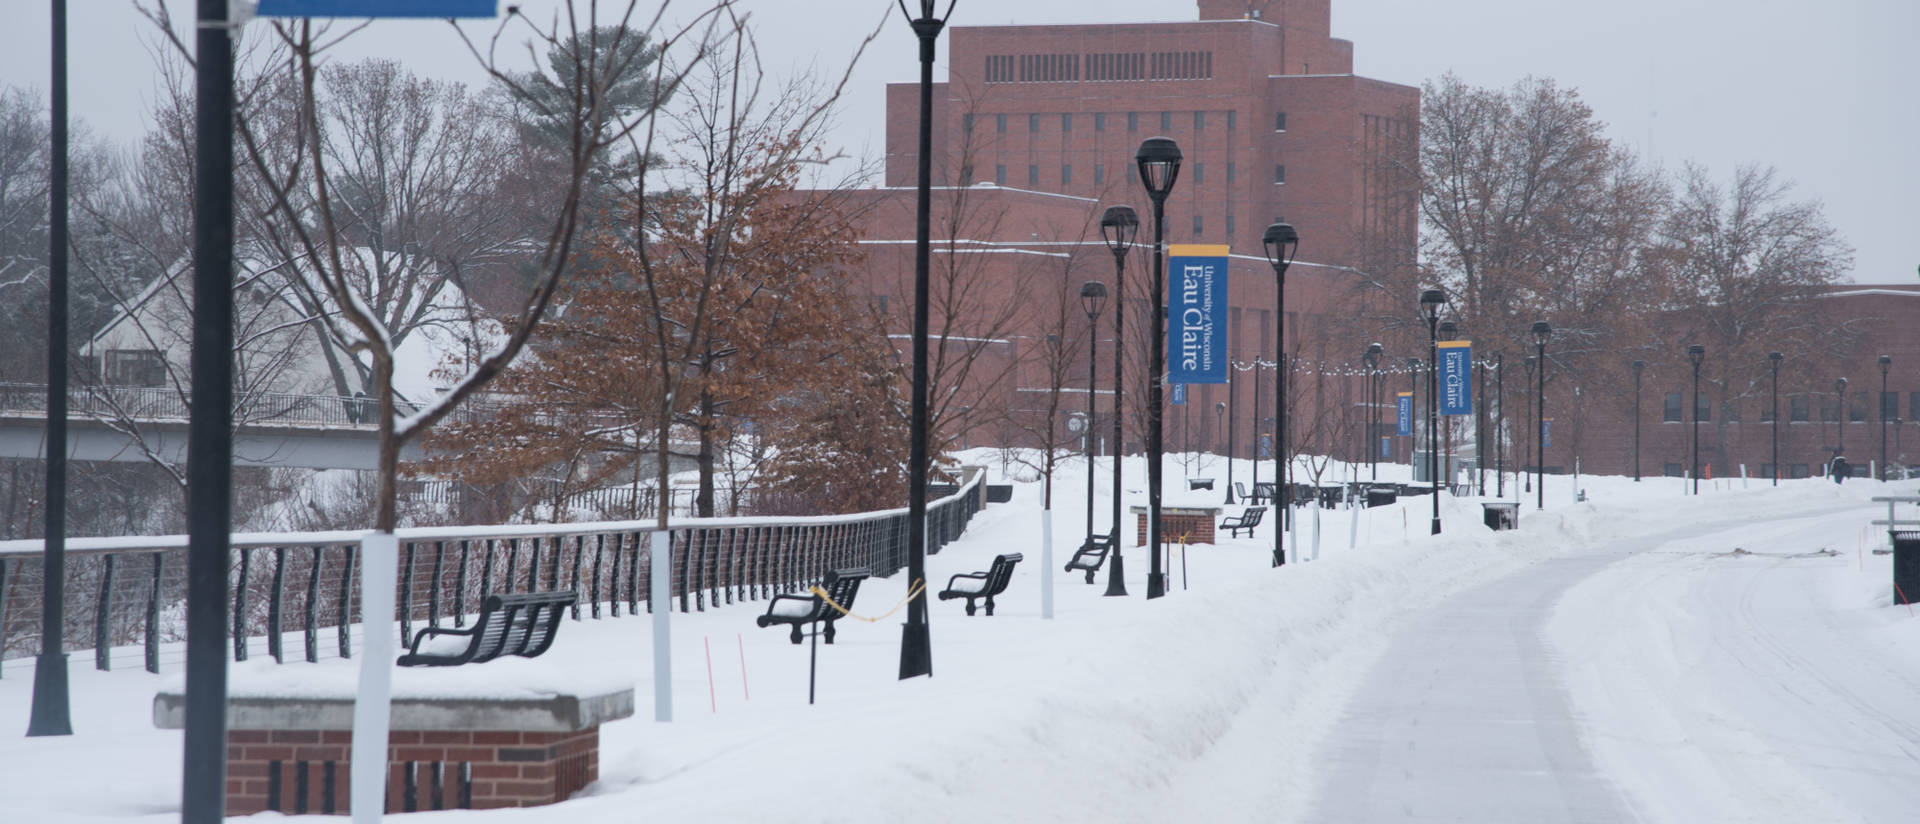 Lower campus in winter